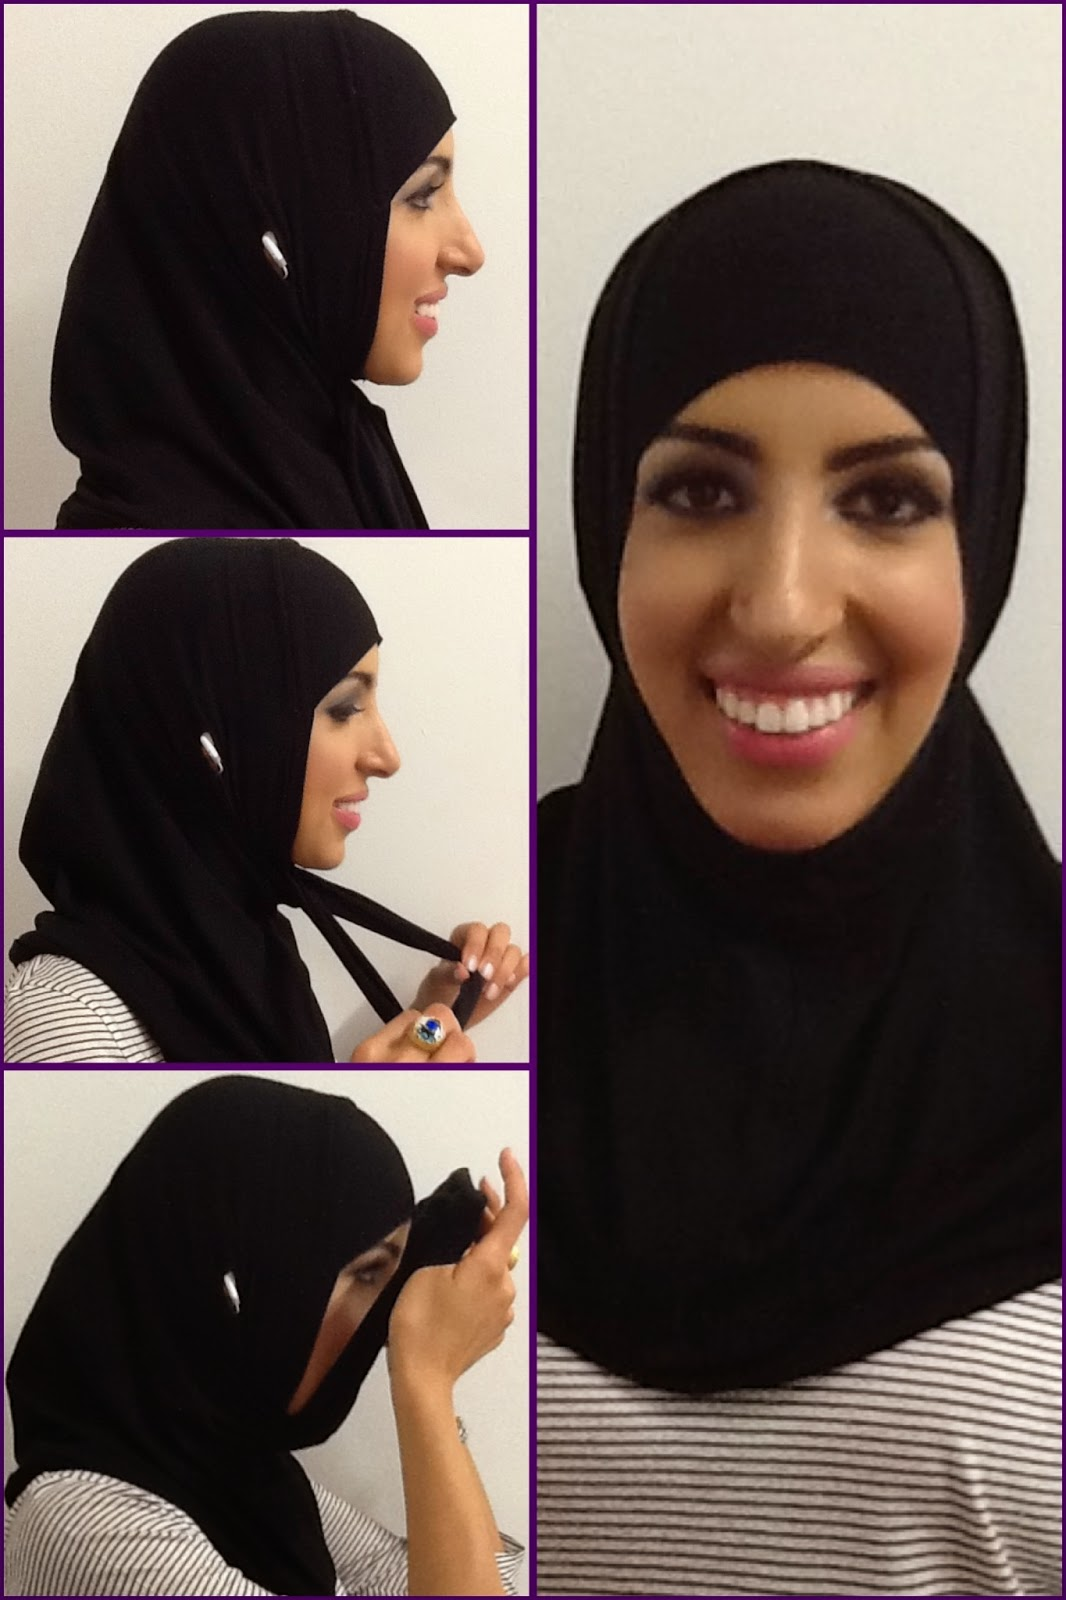 The Majida hijab is a patenthijab